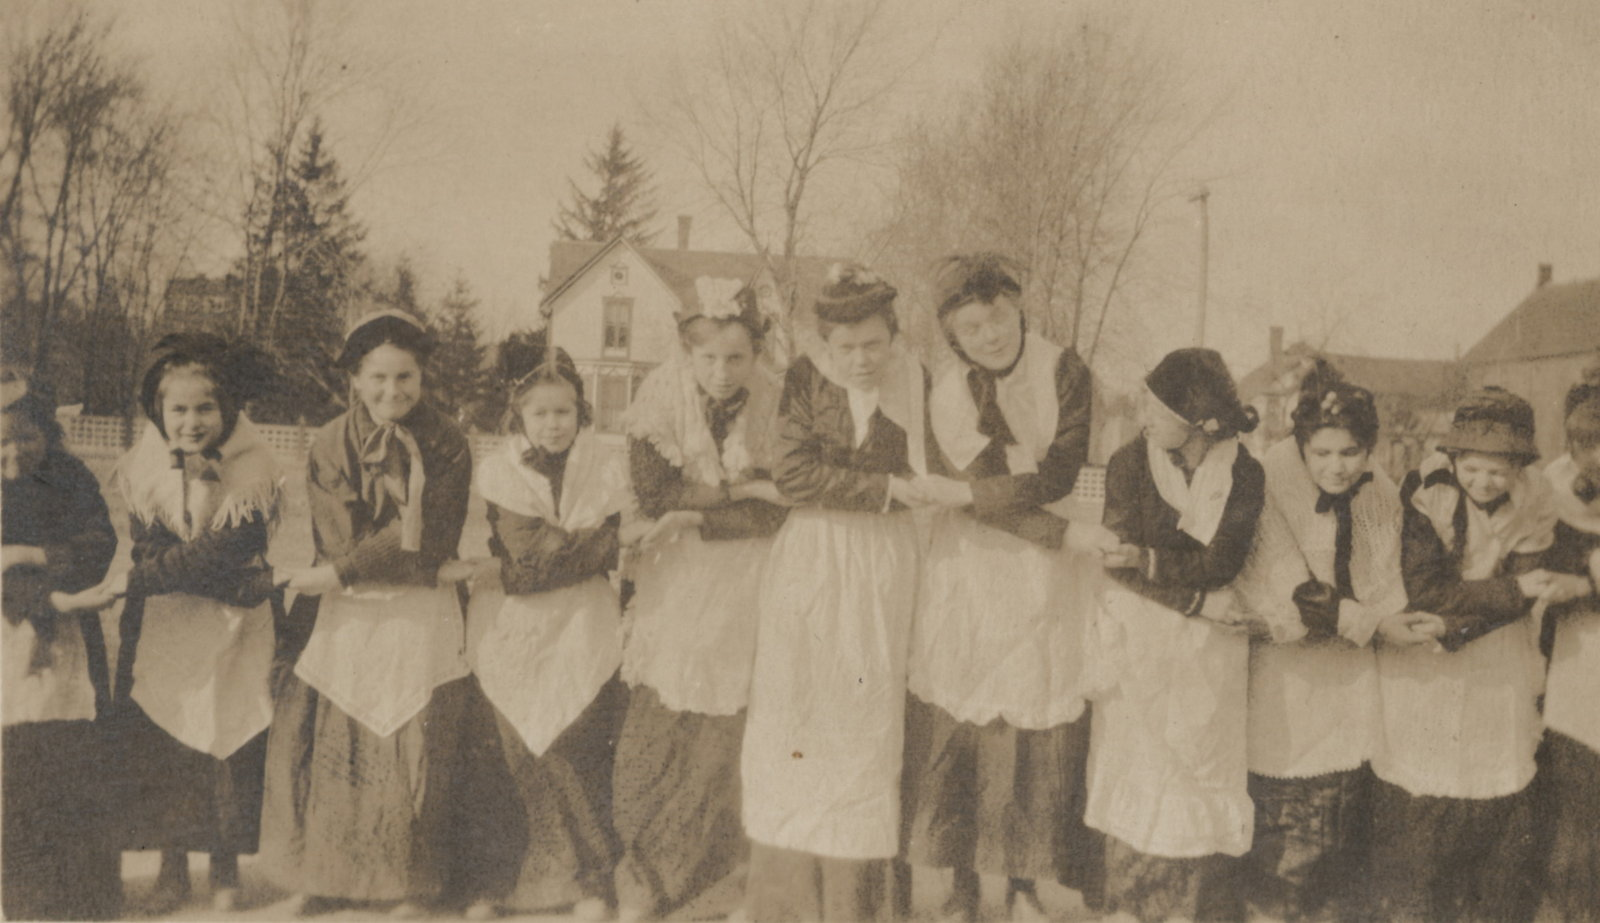 Students of the Laura Secord Memorial School in Queenston, 1919. <br>Courtesy the Niagara-on-the-Lake Public Library.